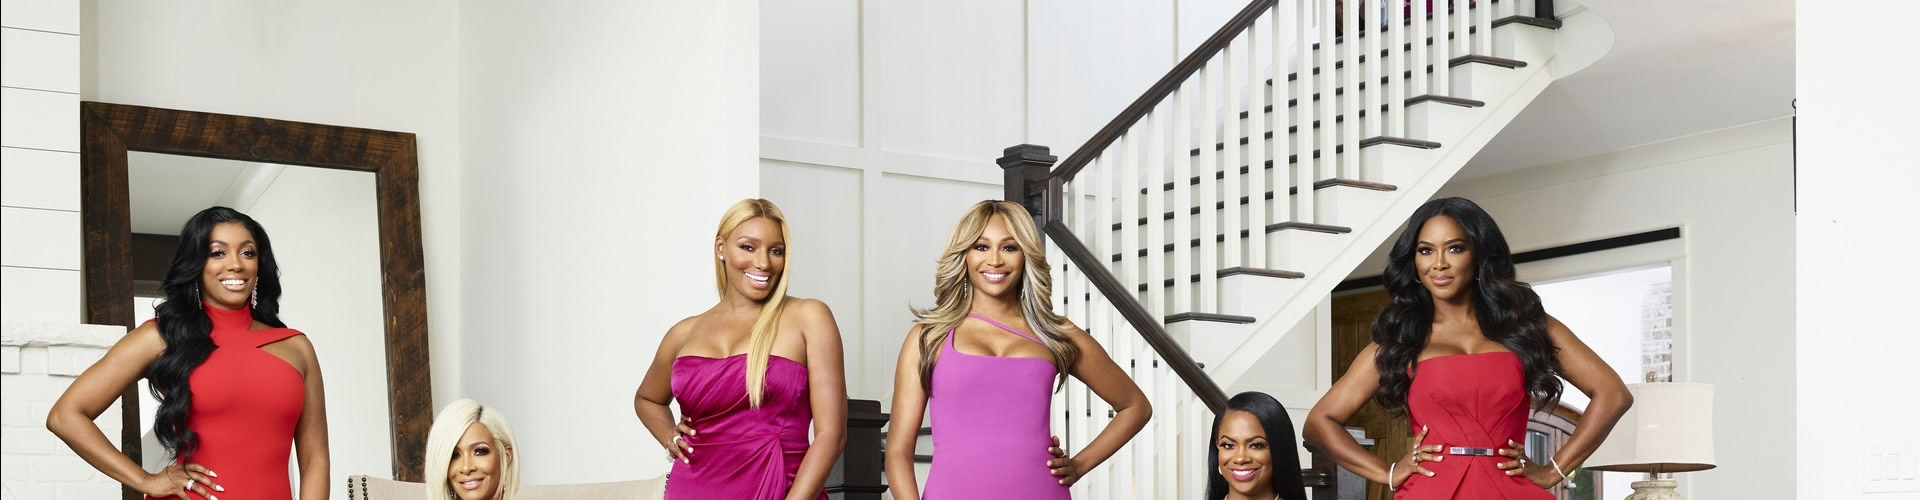 Watch The Real Housewives of Atlanta - Specials Online